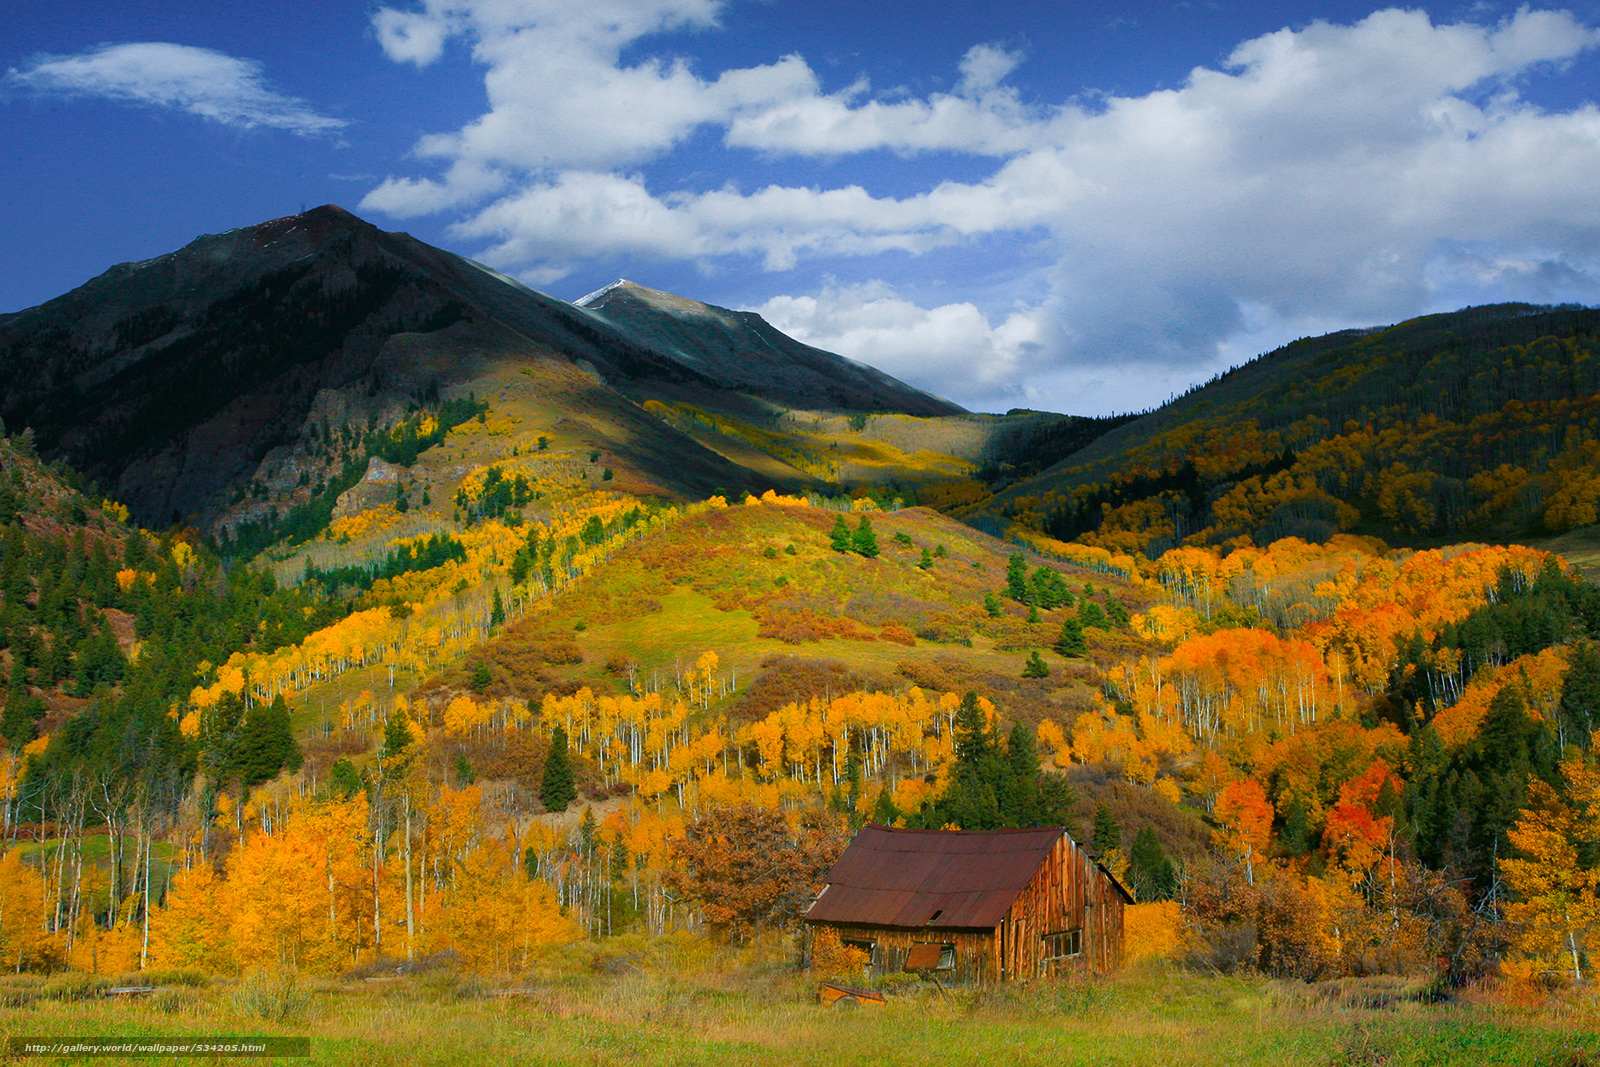 Download Wallpaper All To Myself Last Million Dollar Highway Telluride Co Free Desktop In The Resolution 3000x2001 Picture No534205